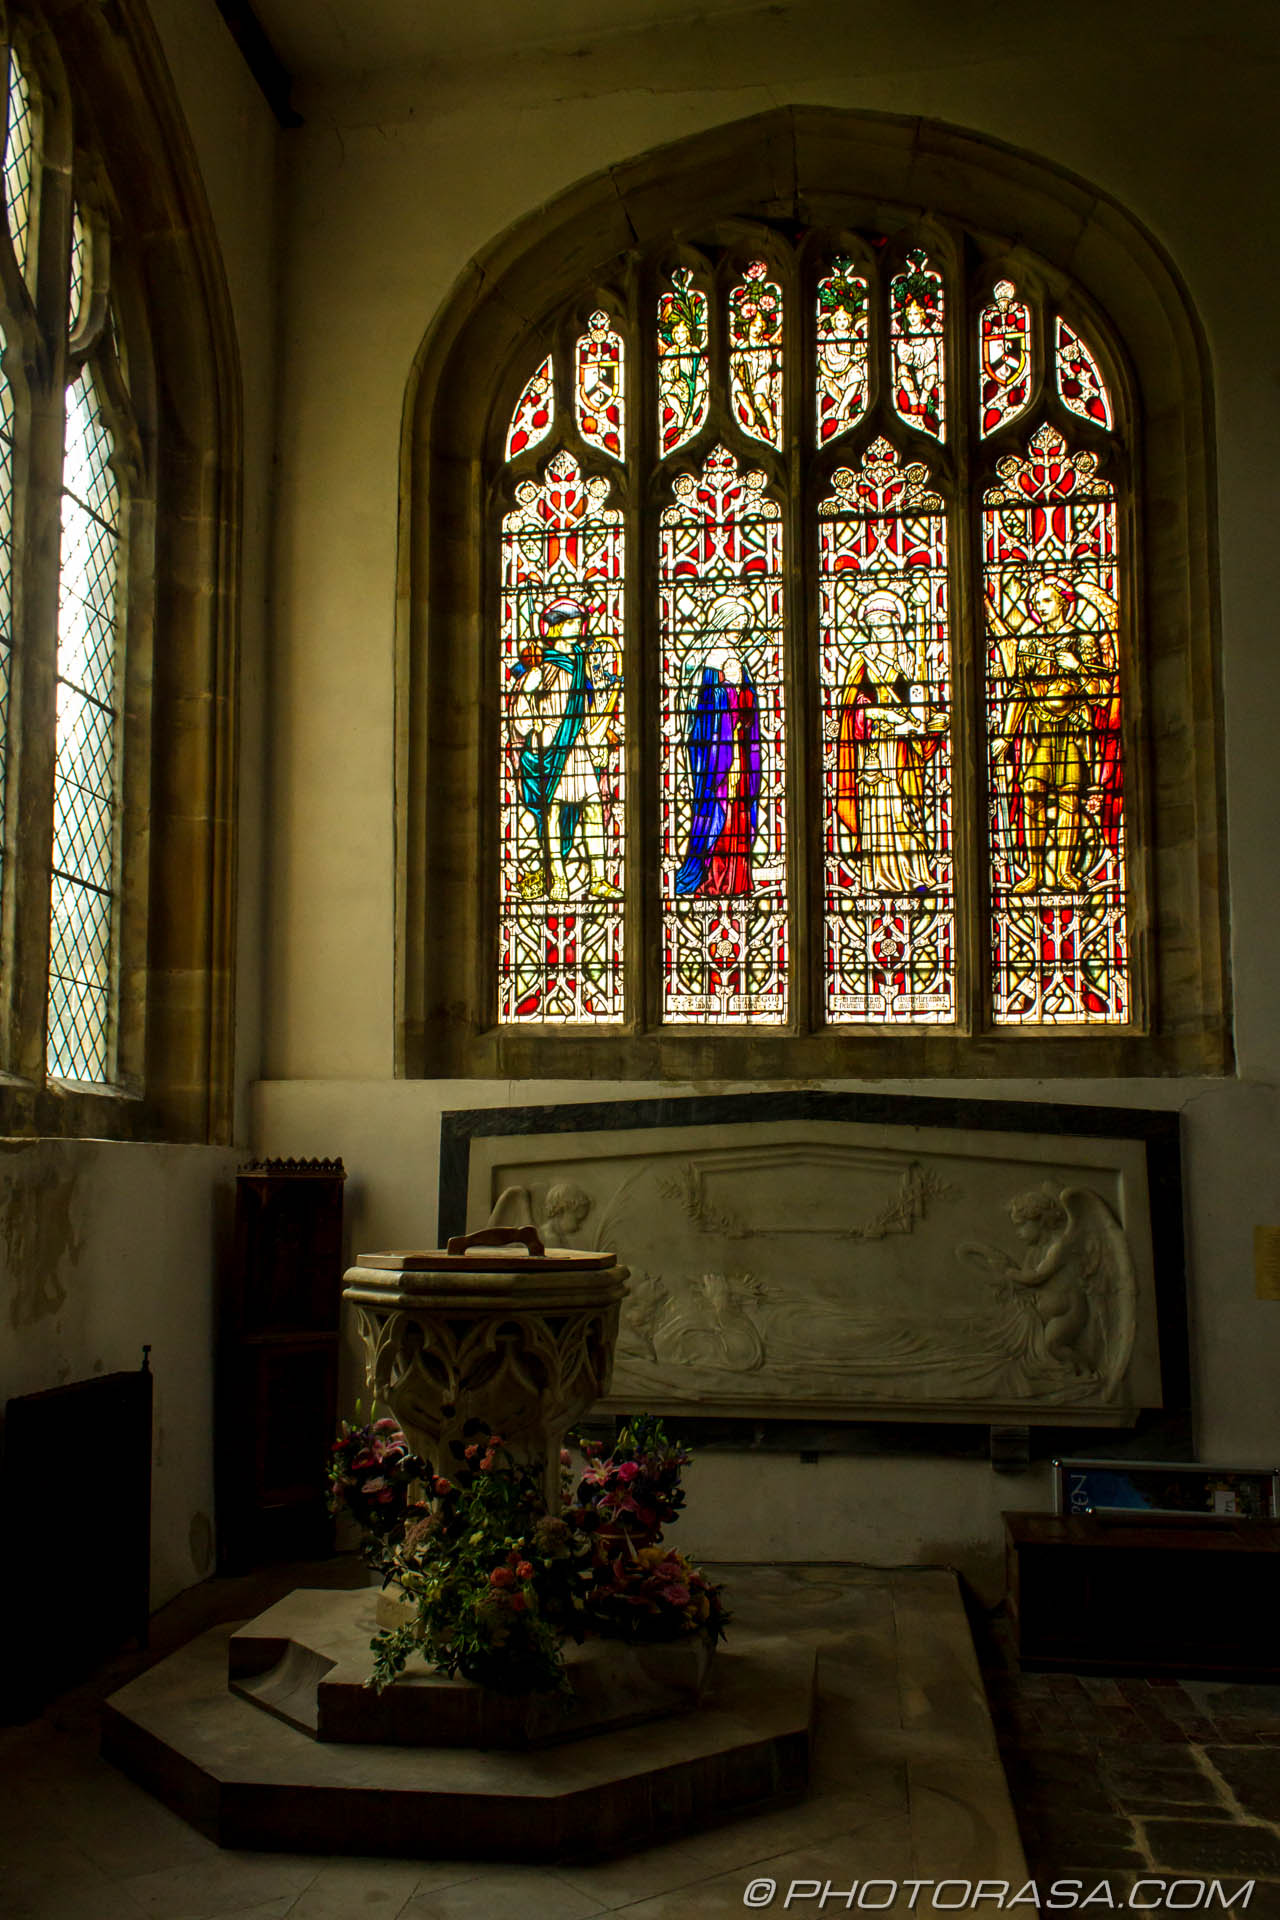 http://photorasa.com/st-dunstans-church-cranbrook/font-by-the-windows/